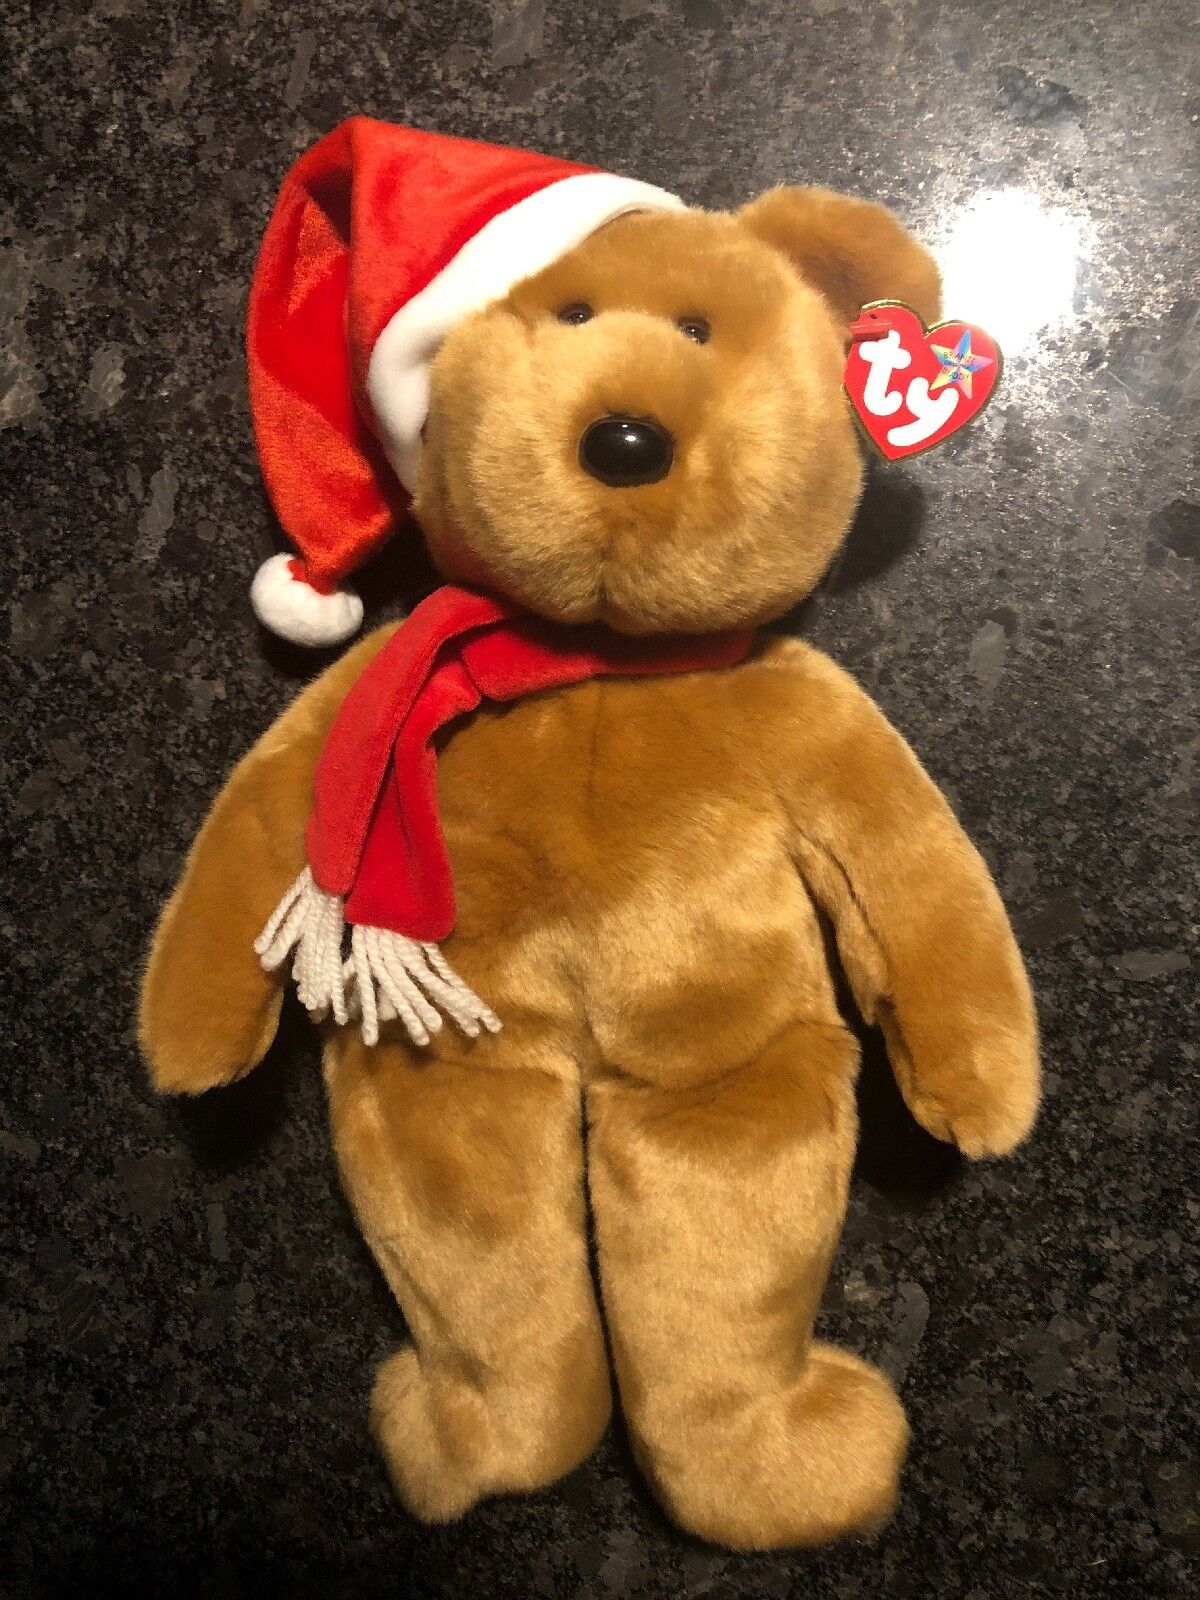 1997 Ty 1997 Holiday Teddy Bear Plush Beanie Buddy 15  ERRORS 2001 Tushtag